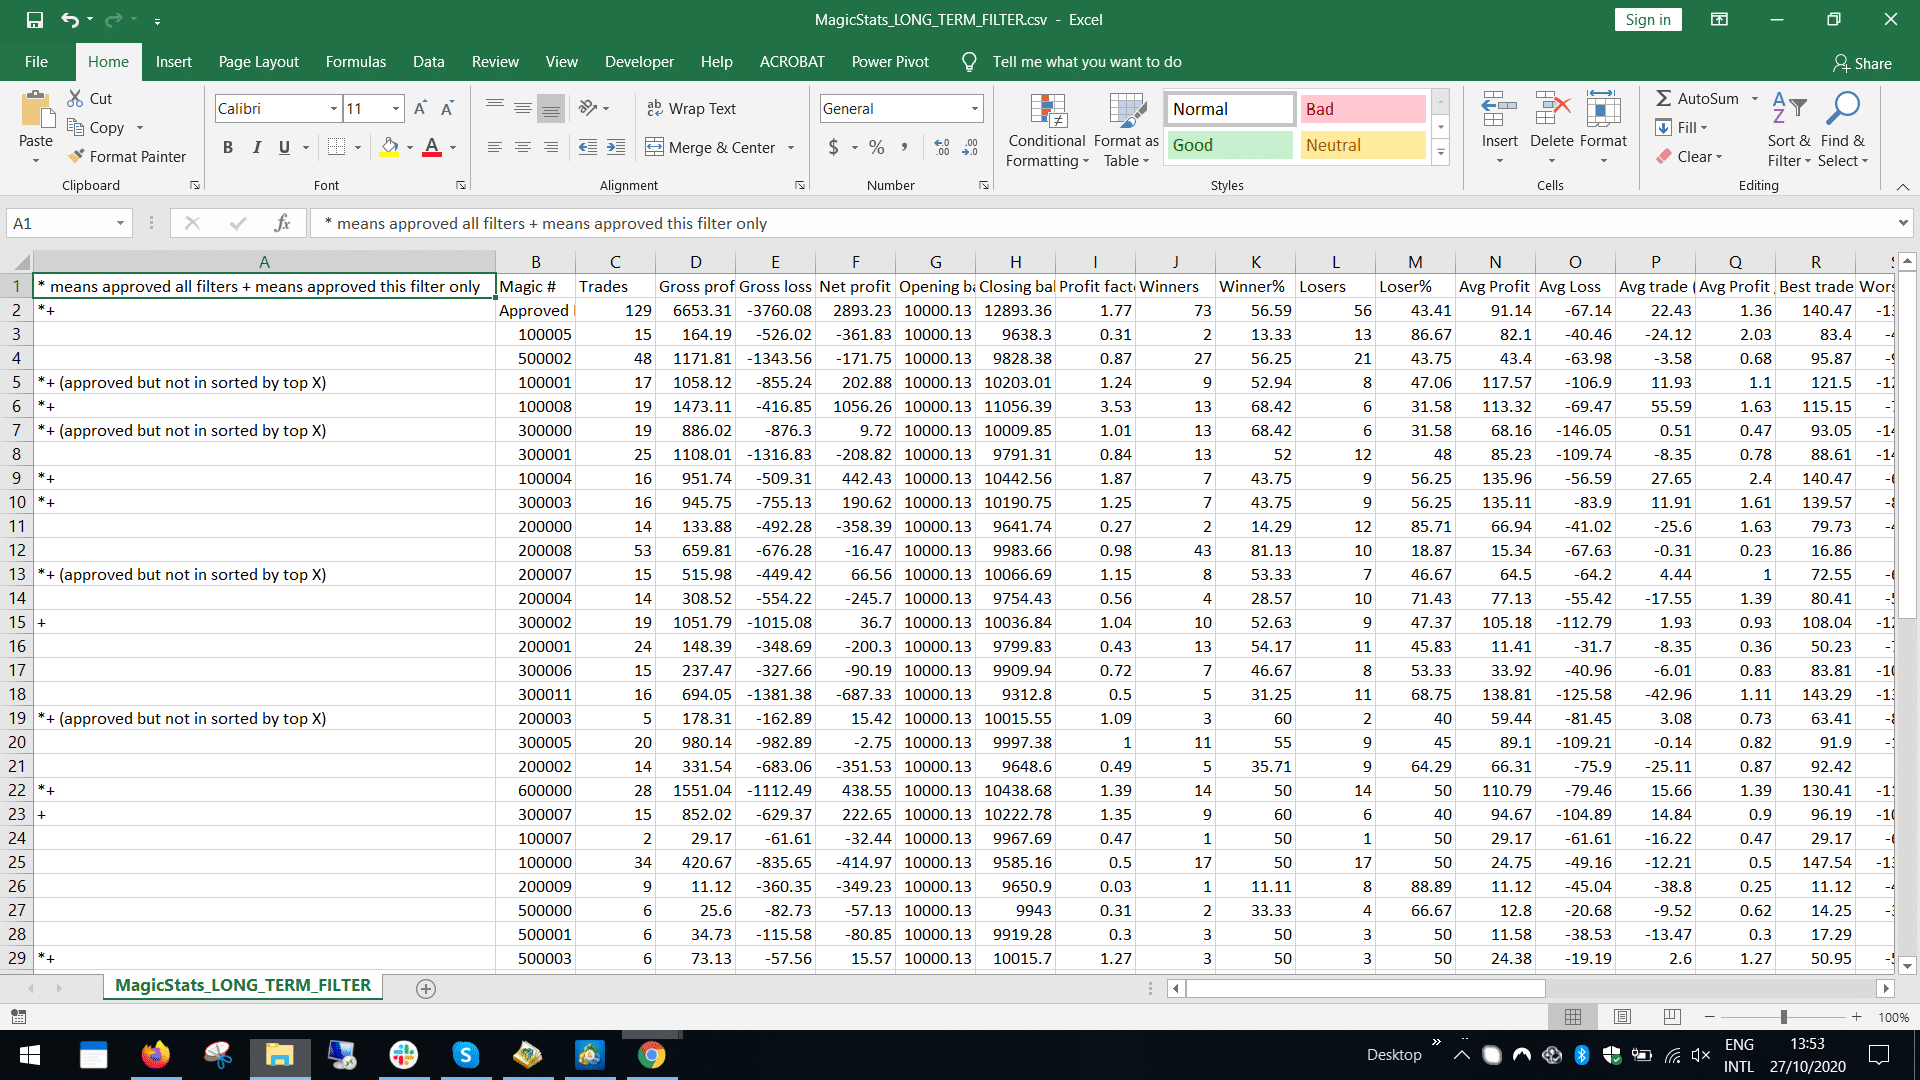 Strategy Samurai outputted long term magic filter file for analysis